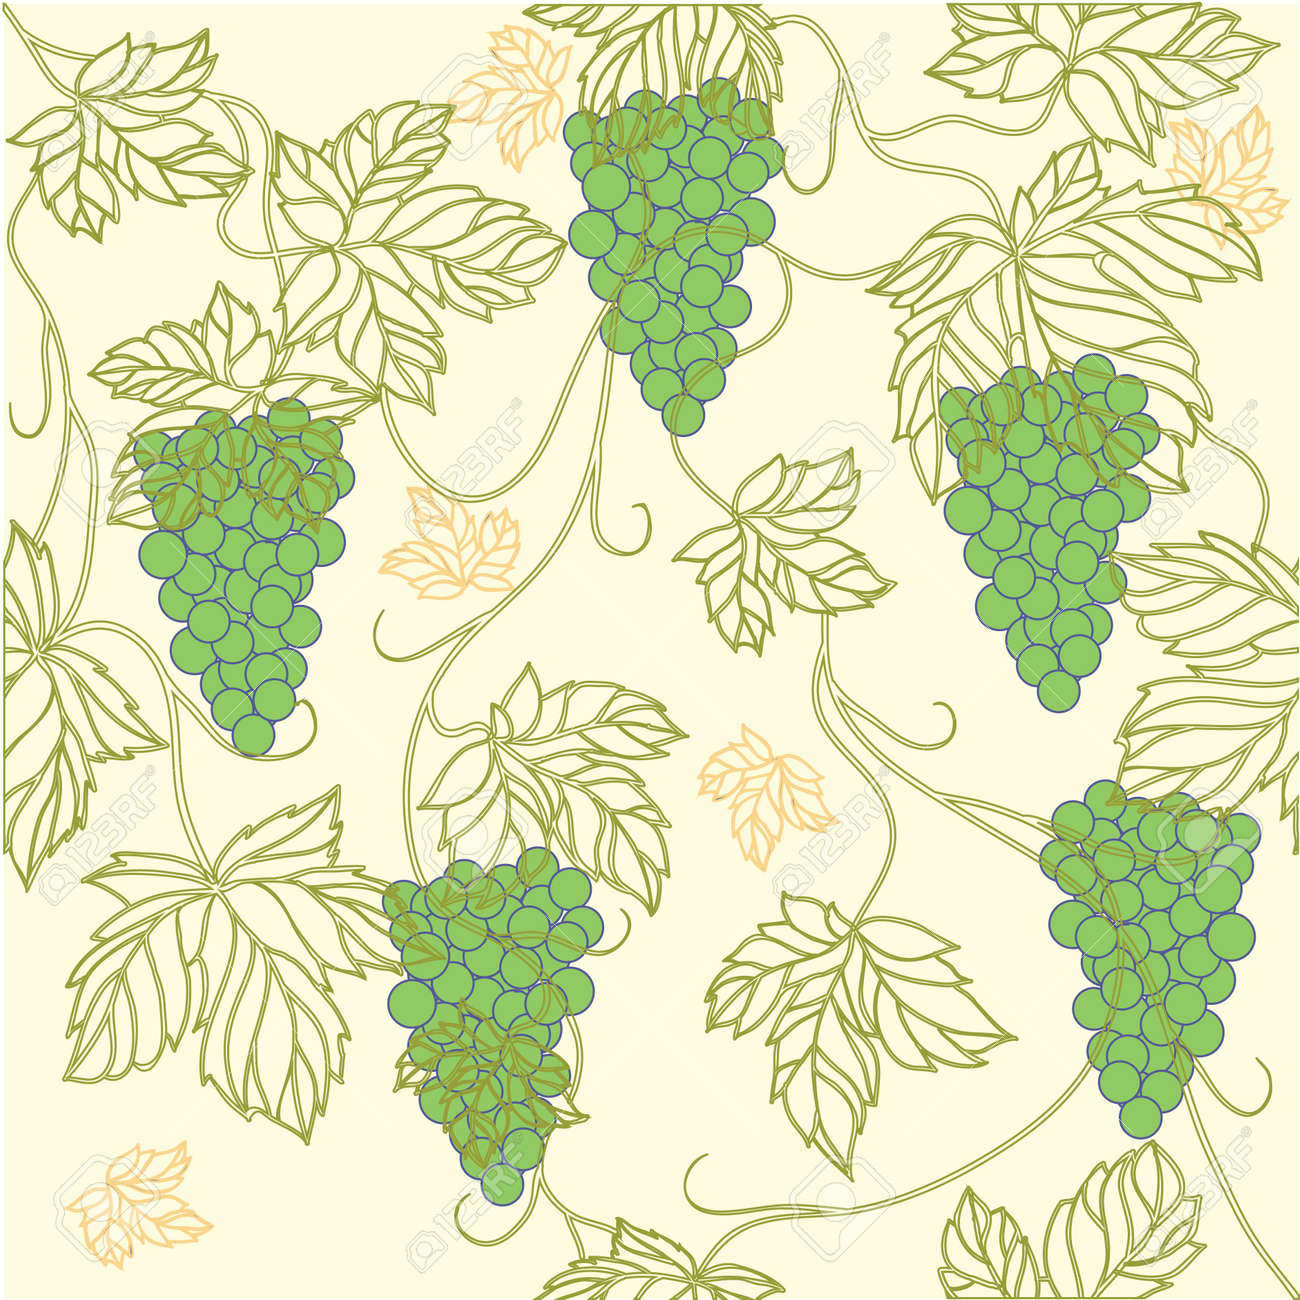 Seamless Wallpaper with floral ornament with leafs and grapes for vintage design,retro background Stock Vector - 8416854